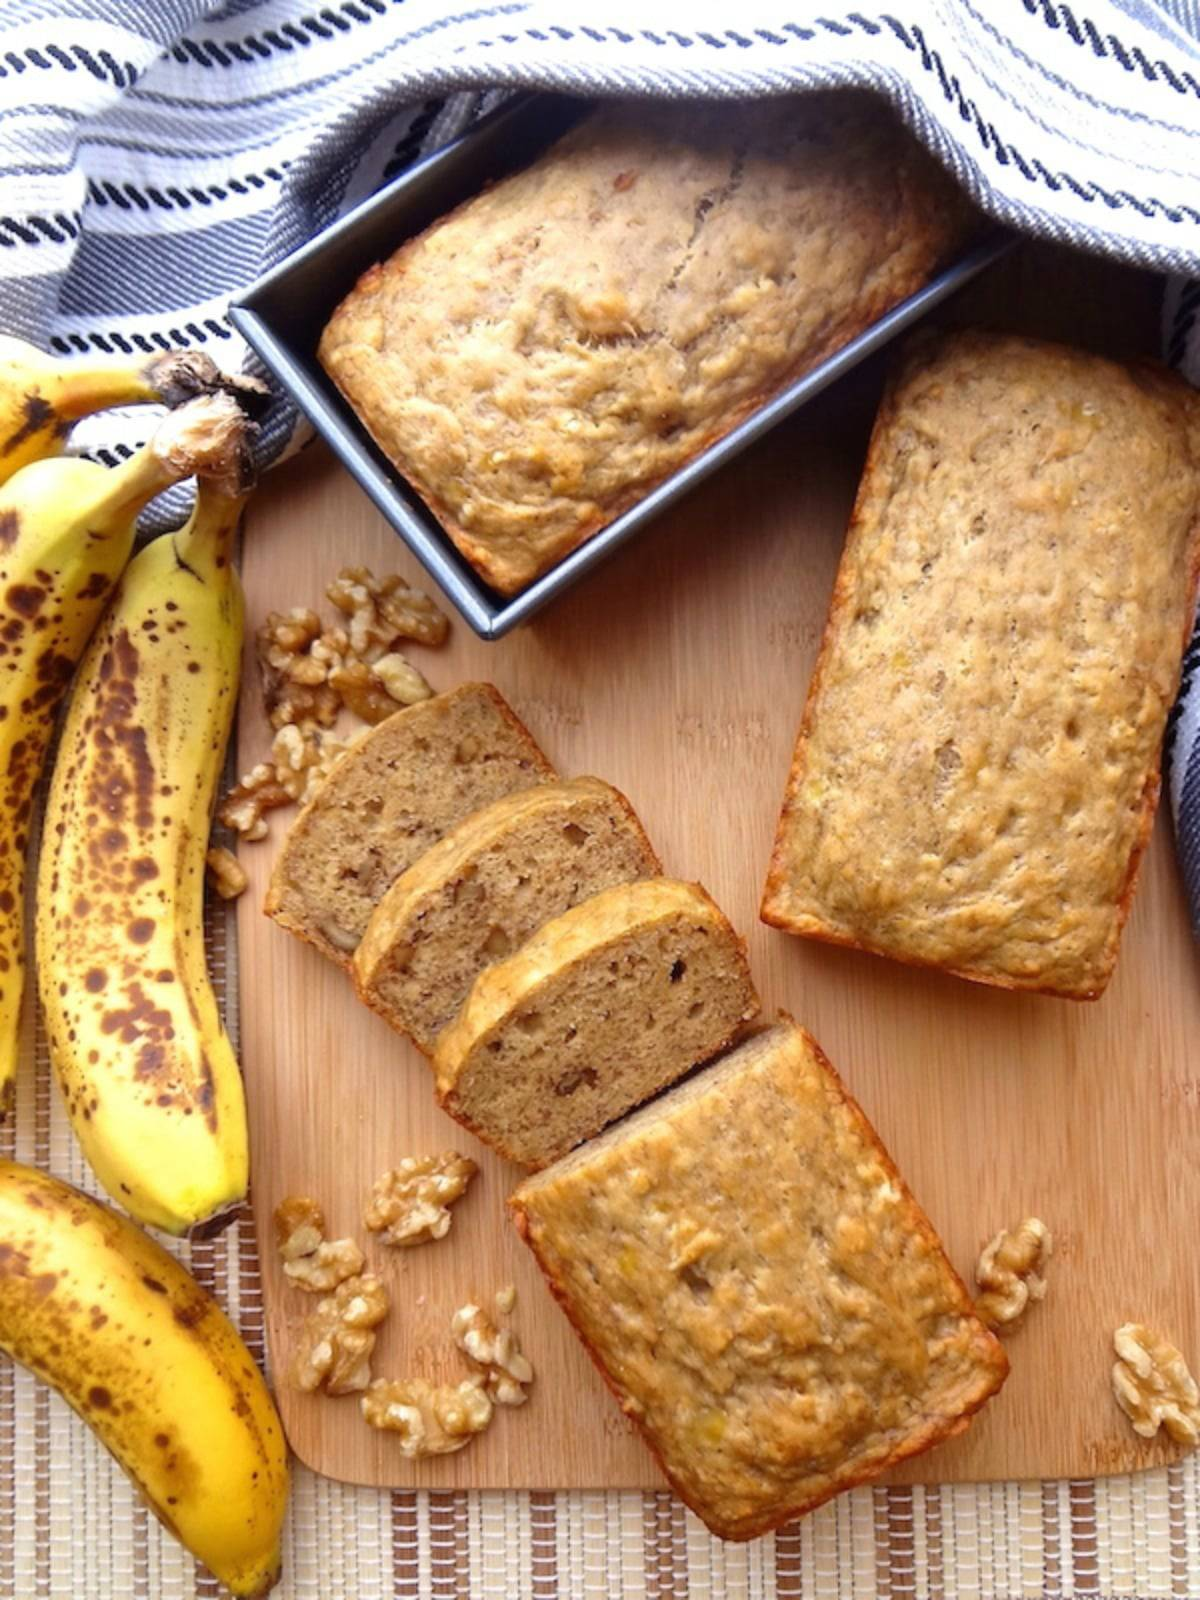 3 loaves of vegan banana bread.  One in the loaf pan, one whole, and the other with 3 slices cut.